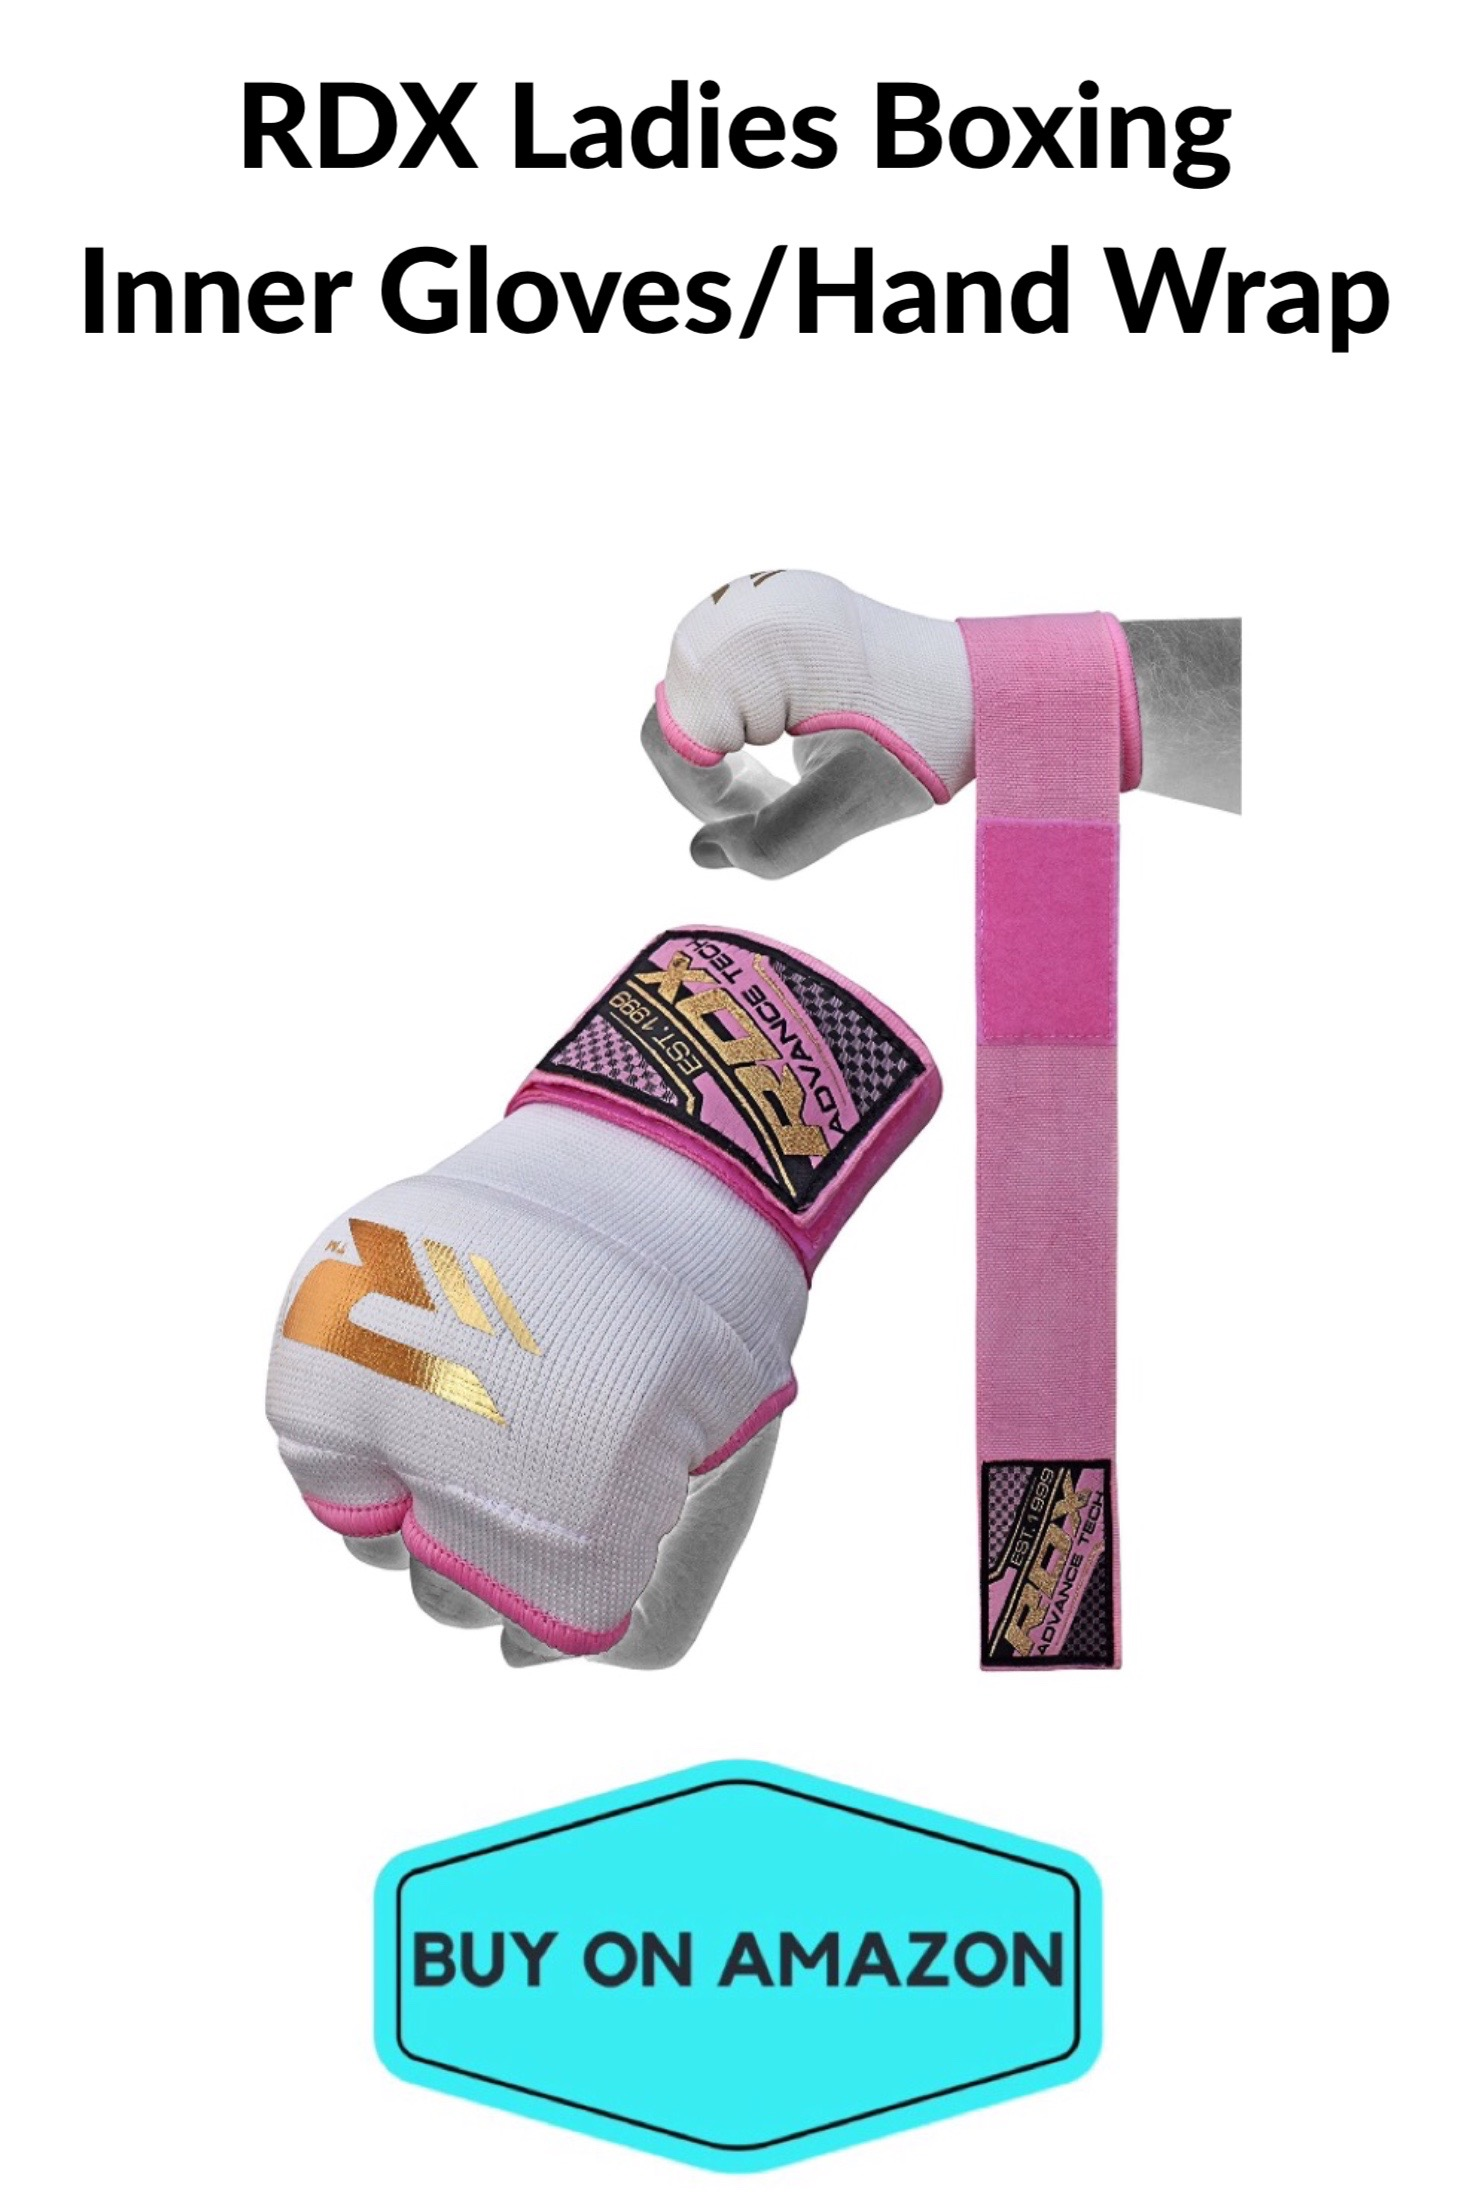 RDX Ladies Boxing Inner Gloves/Hand Wrap